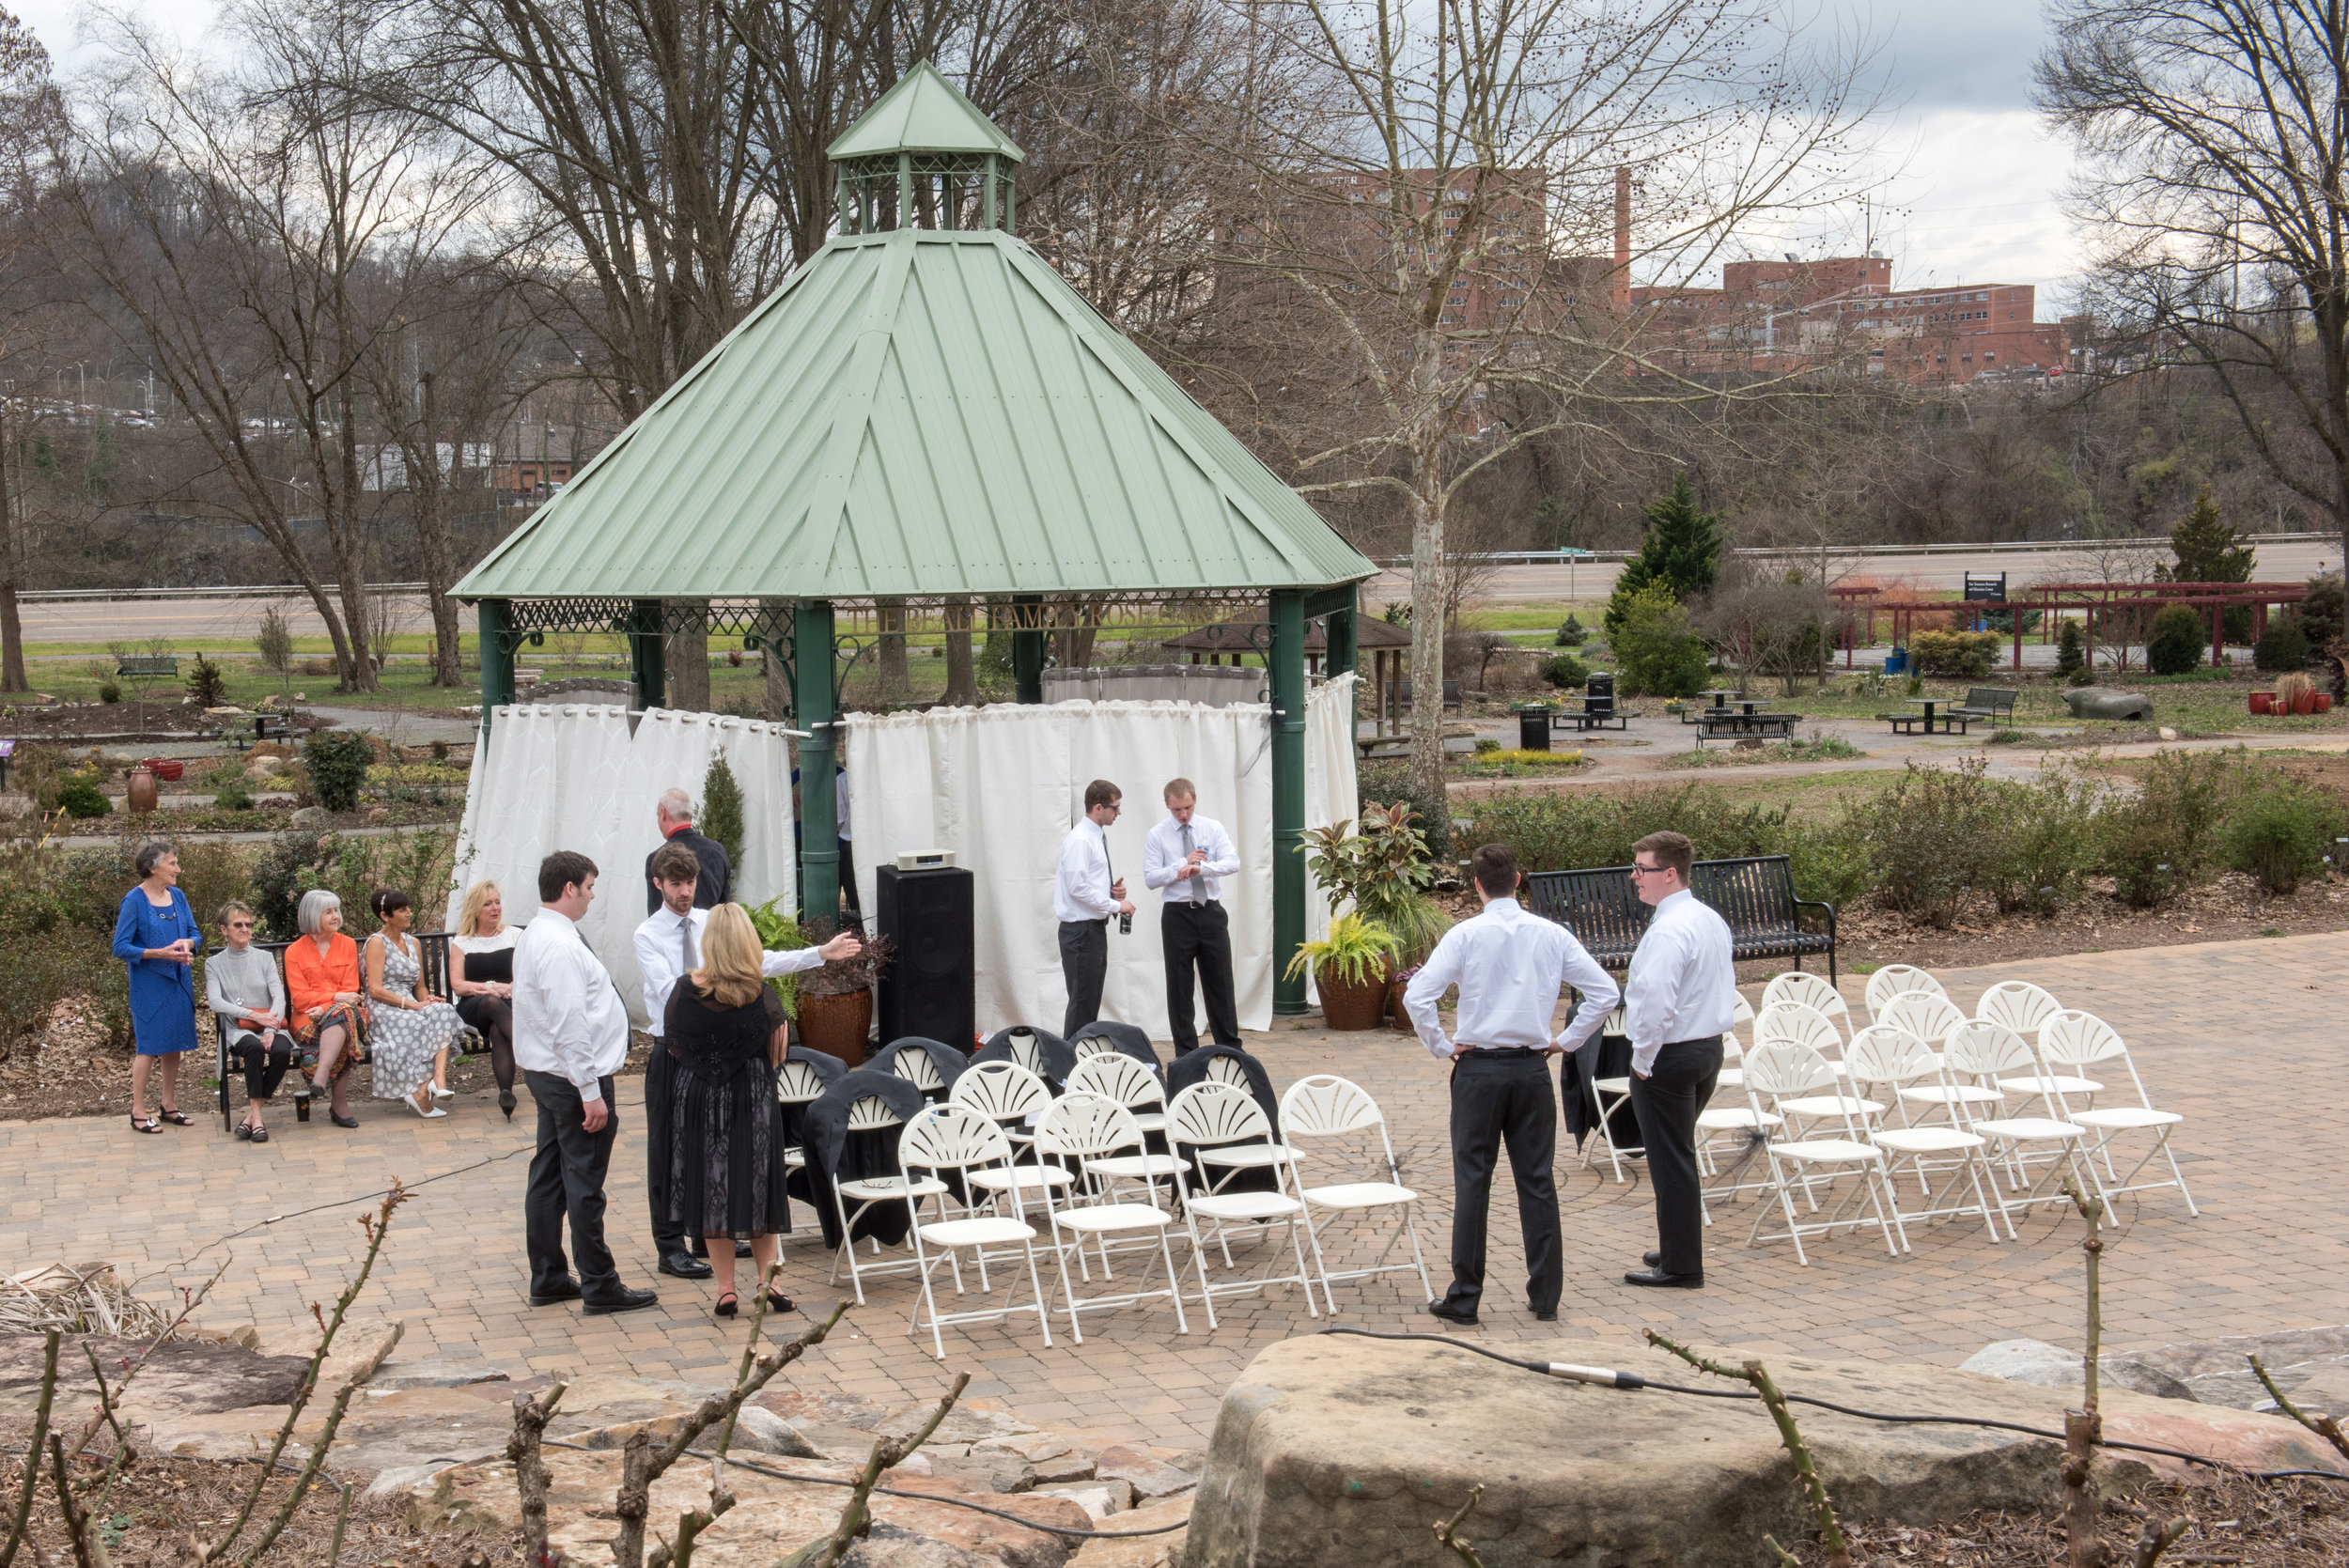 The Gazebo was draped for privacy & hiding the bride - nice work Colleen!